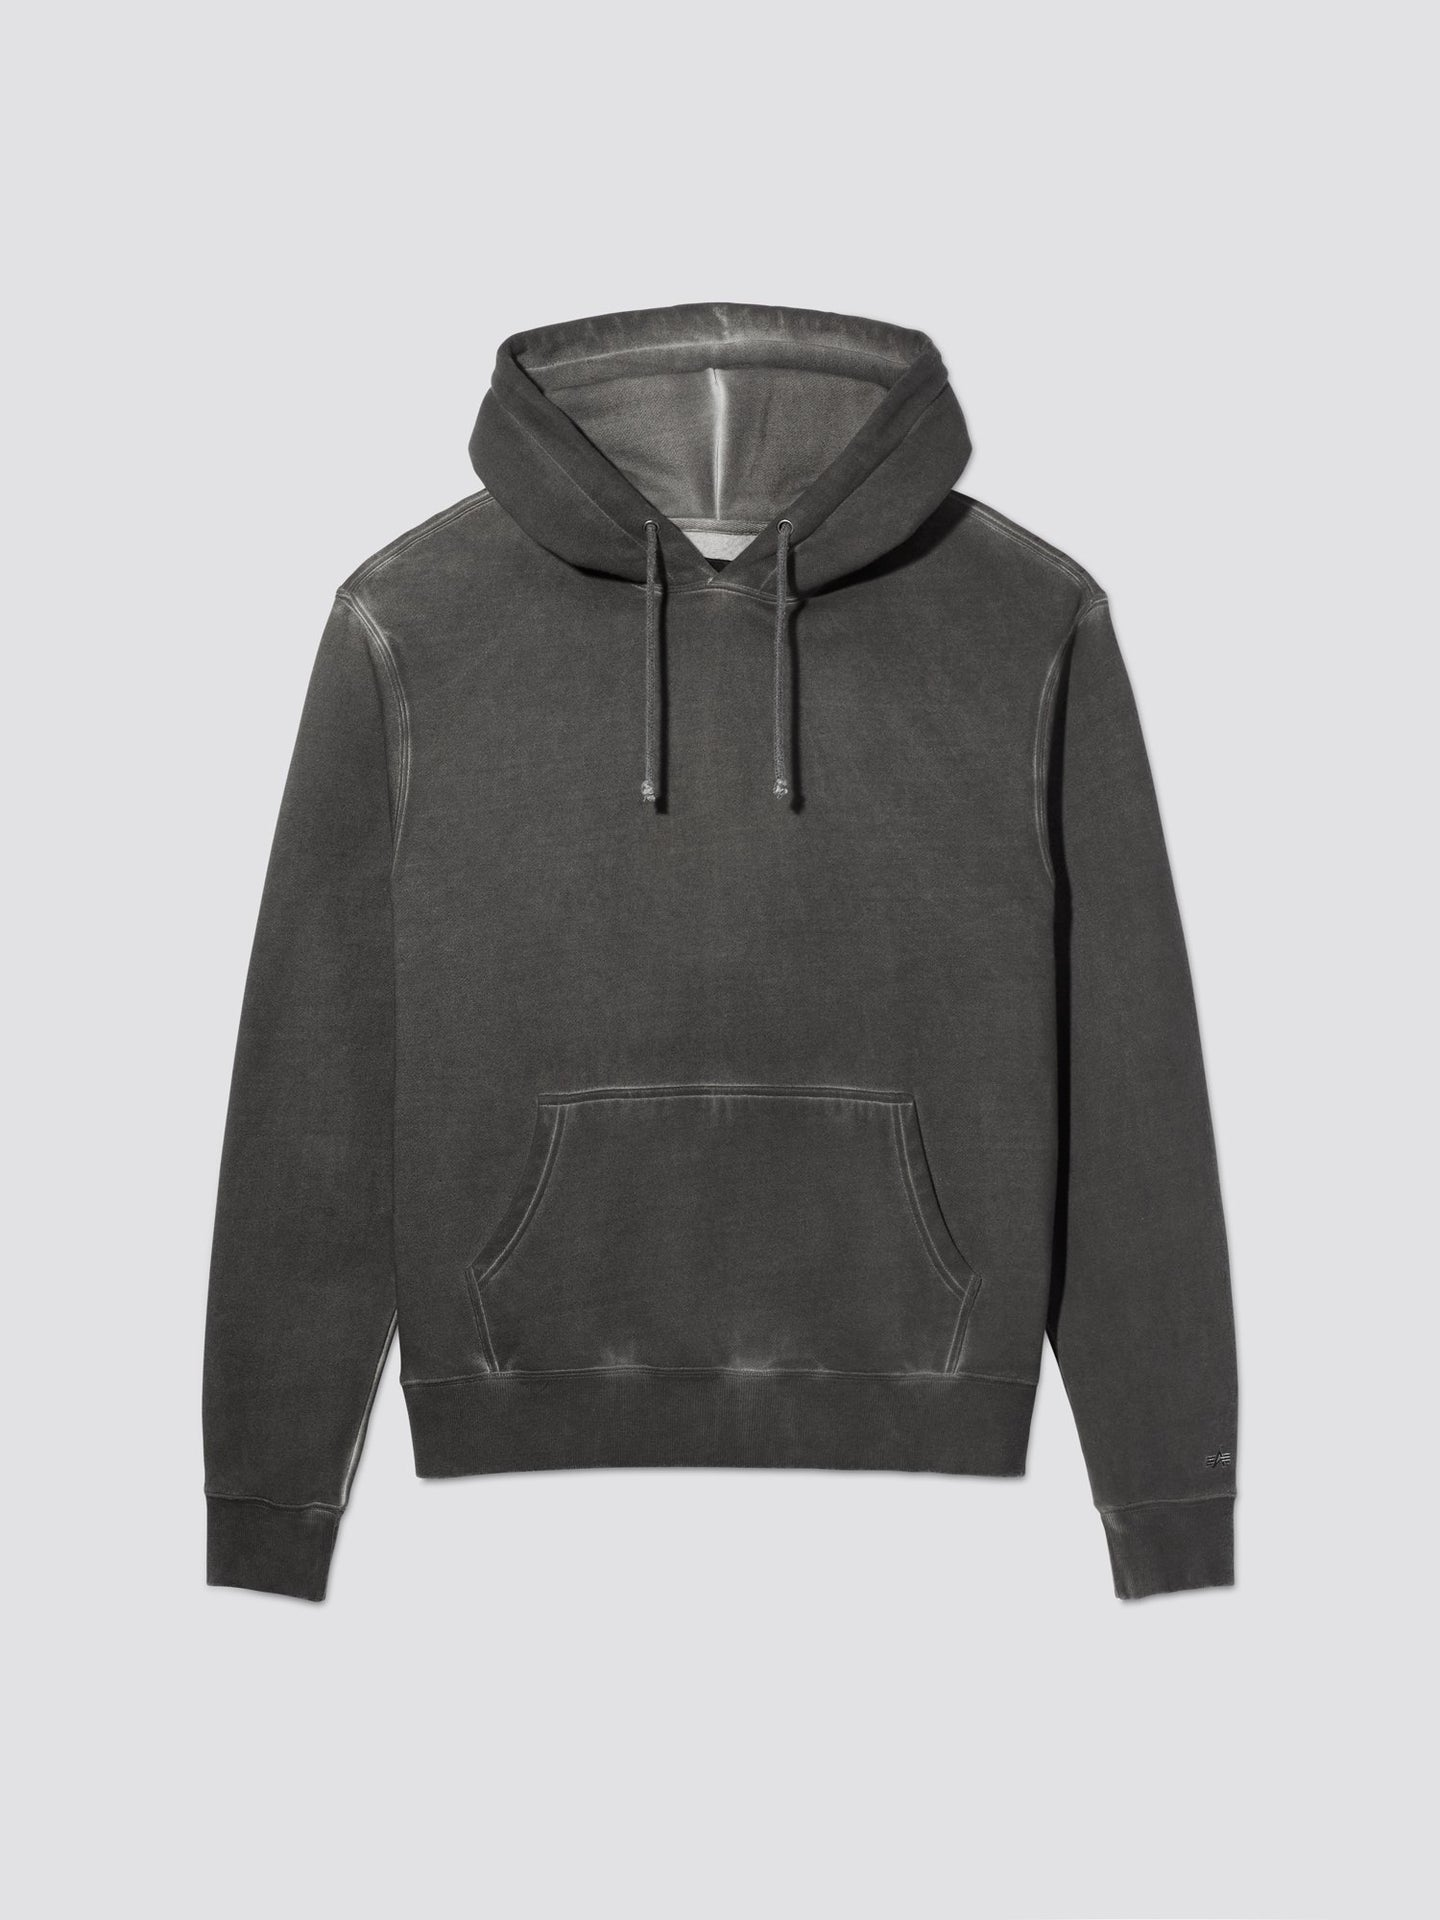 BATTLEWASH HOODIE TOP Alpha Industries, Inc. DARK GRAY 2XL